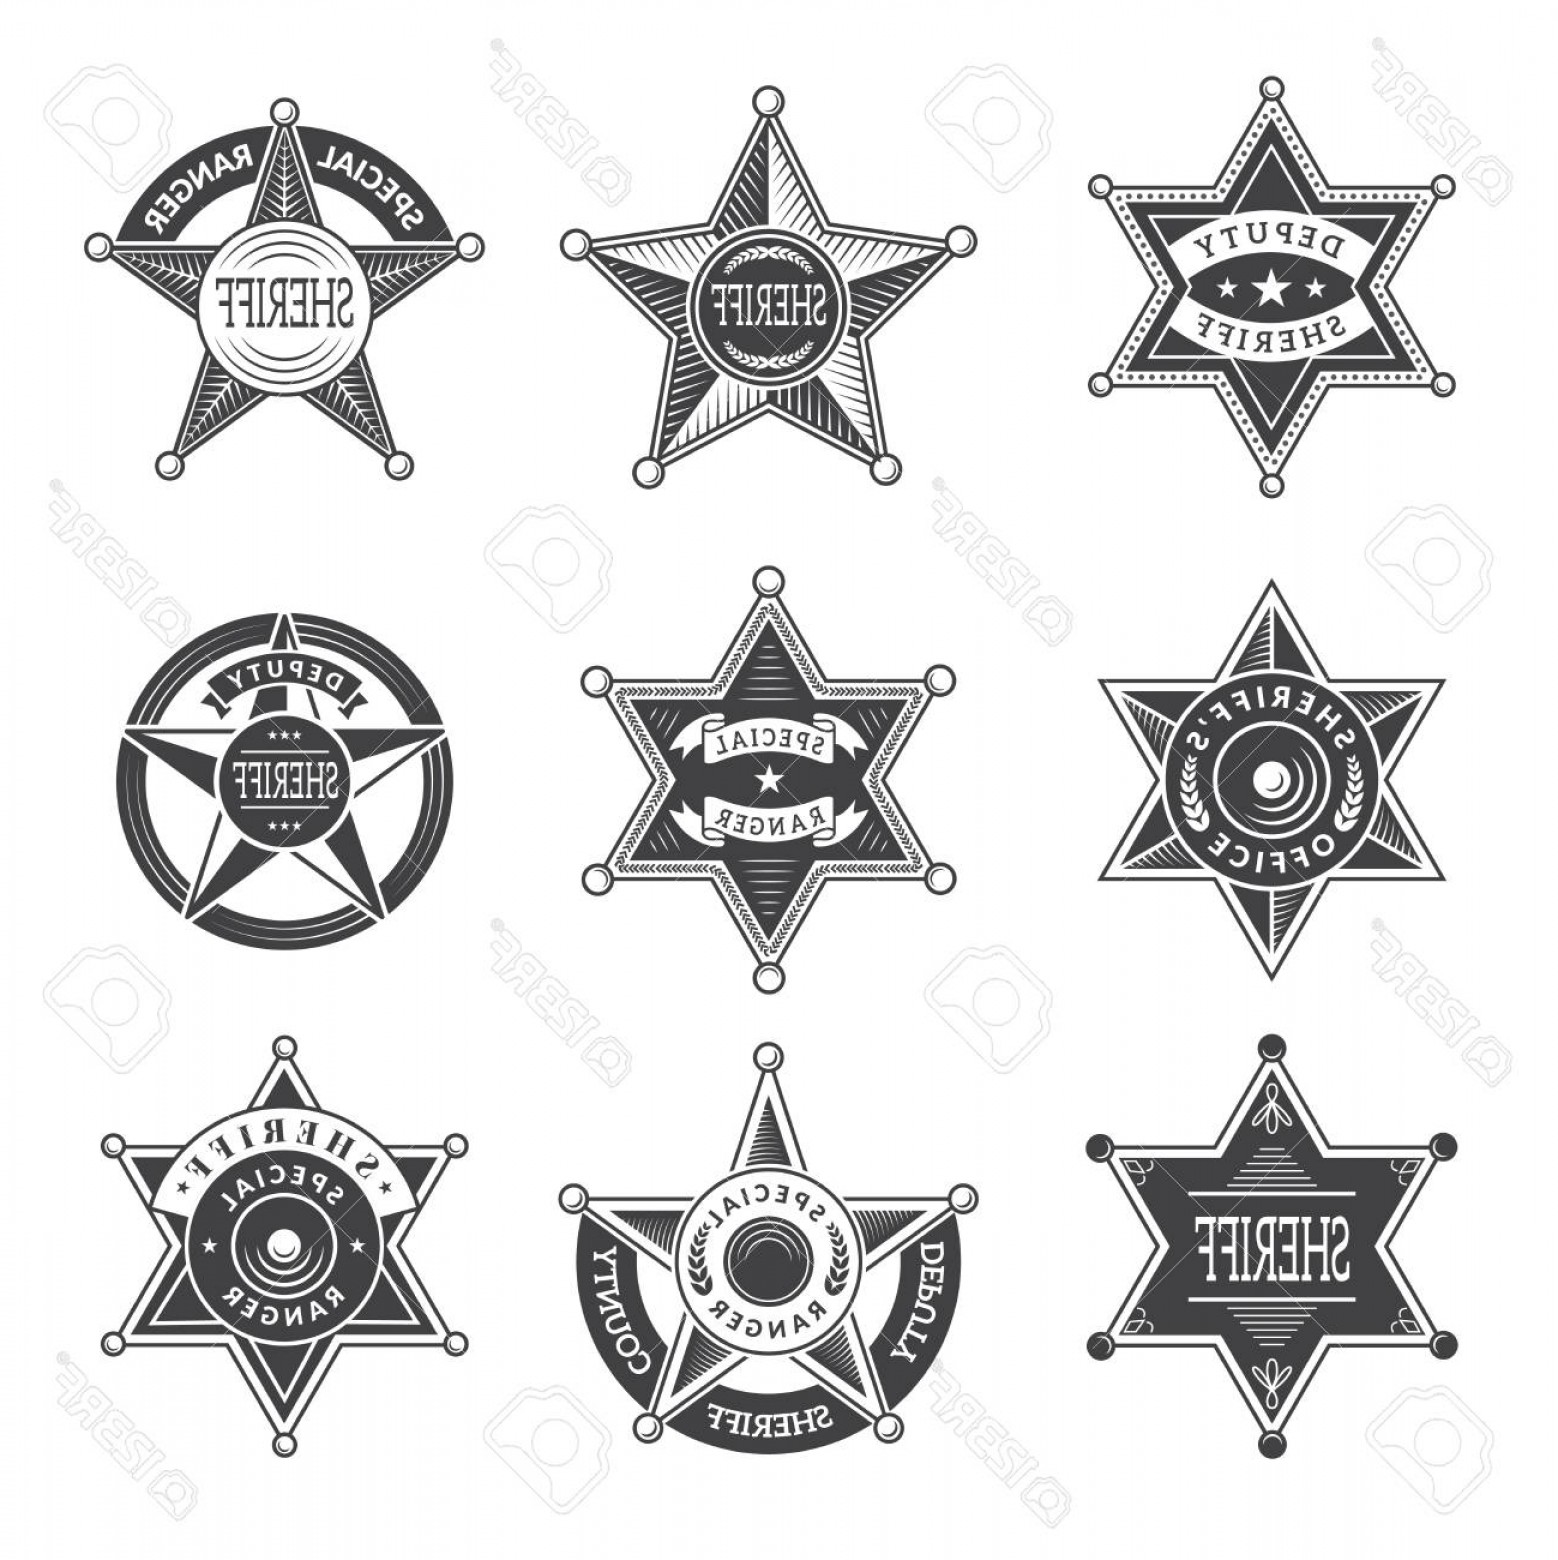 Star Badge Vector: Photostock Vector Sheriff Stars Badges Western Star Texas And Rangers Shields Or Logos Vintage Vector Pictures Illustr